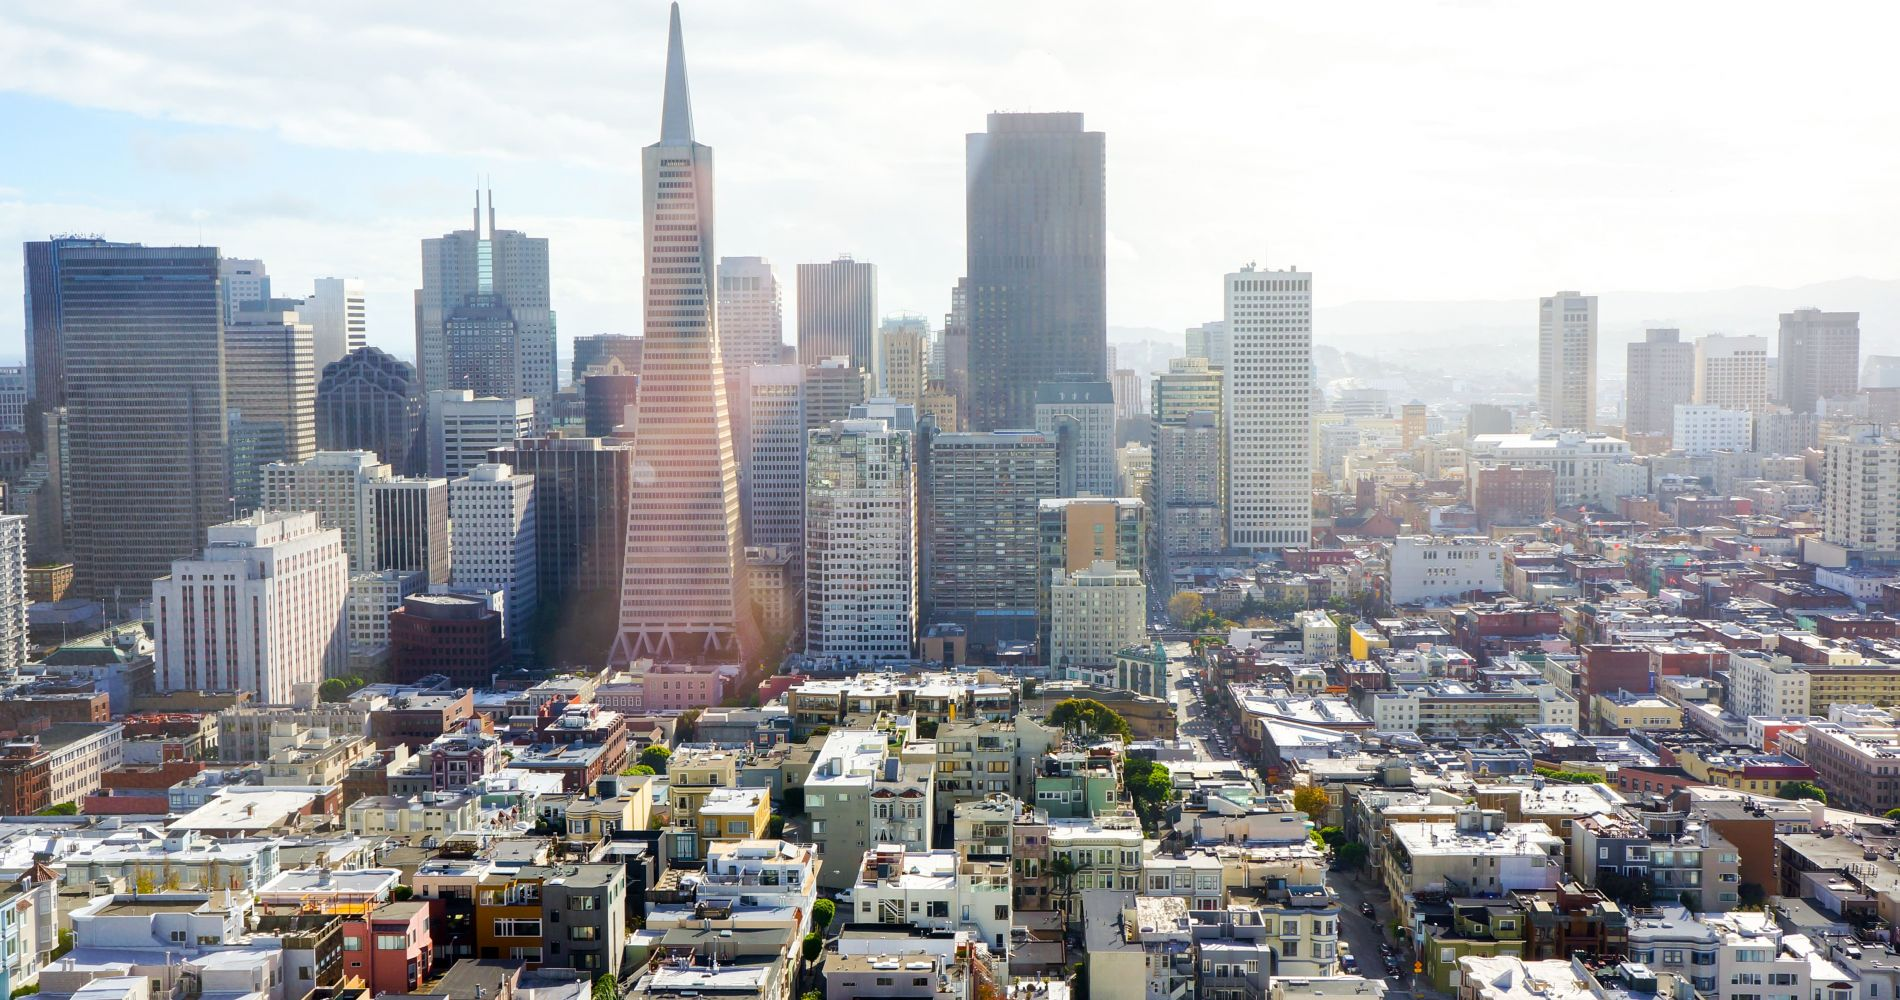 Hop On Hop Off Big Bus Classic Tour: 1 Day Ticket San Francisco and other attractions for Two